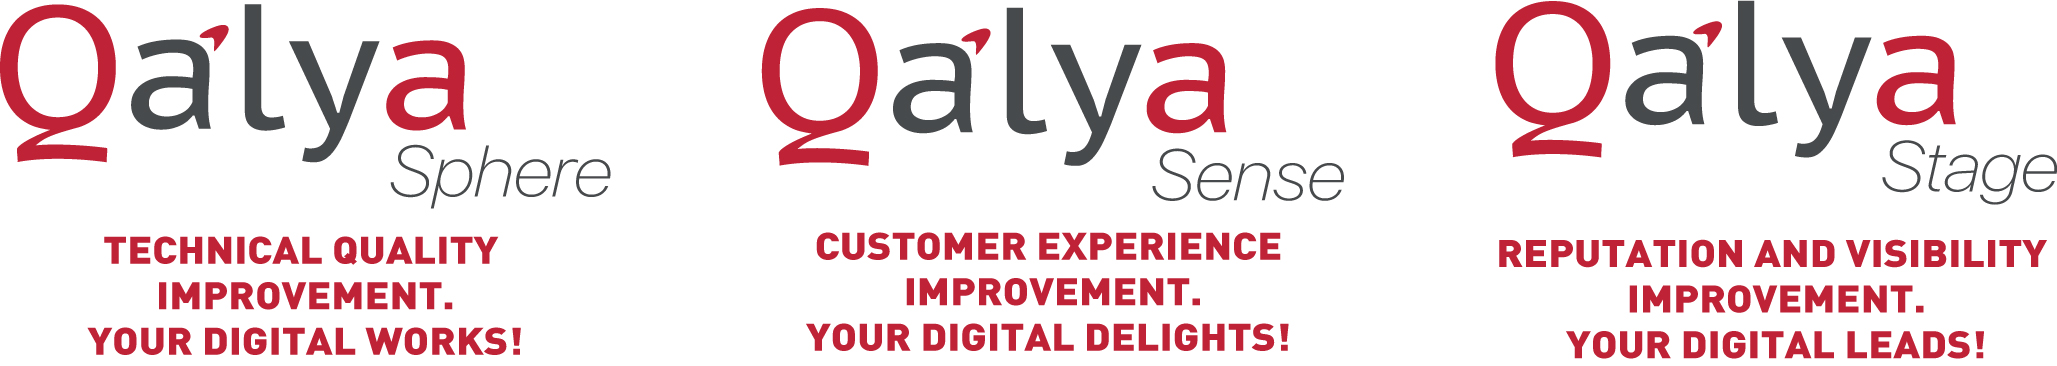 Qalya is a suite designed to optimise the digital customer experience, THE QALYA SUITE